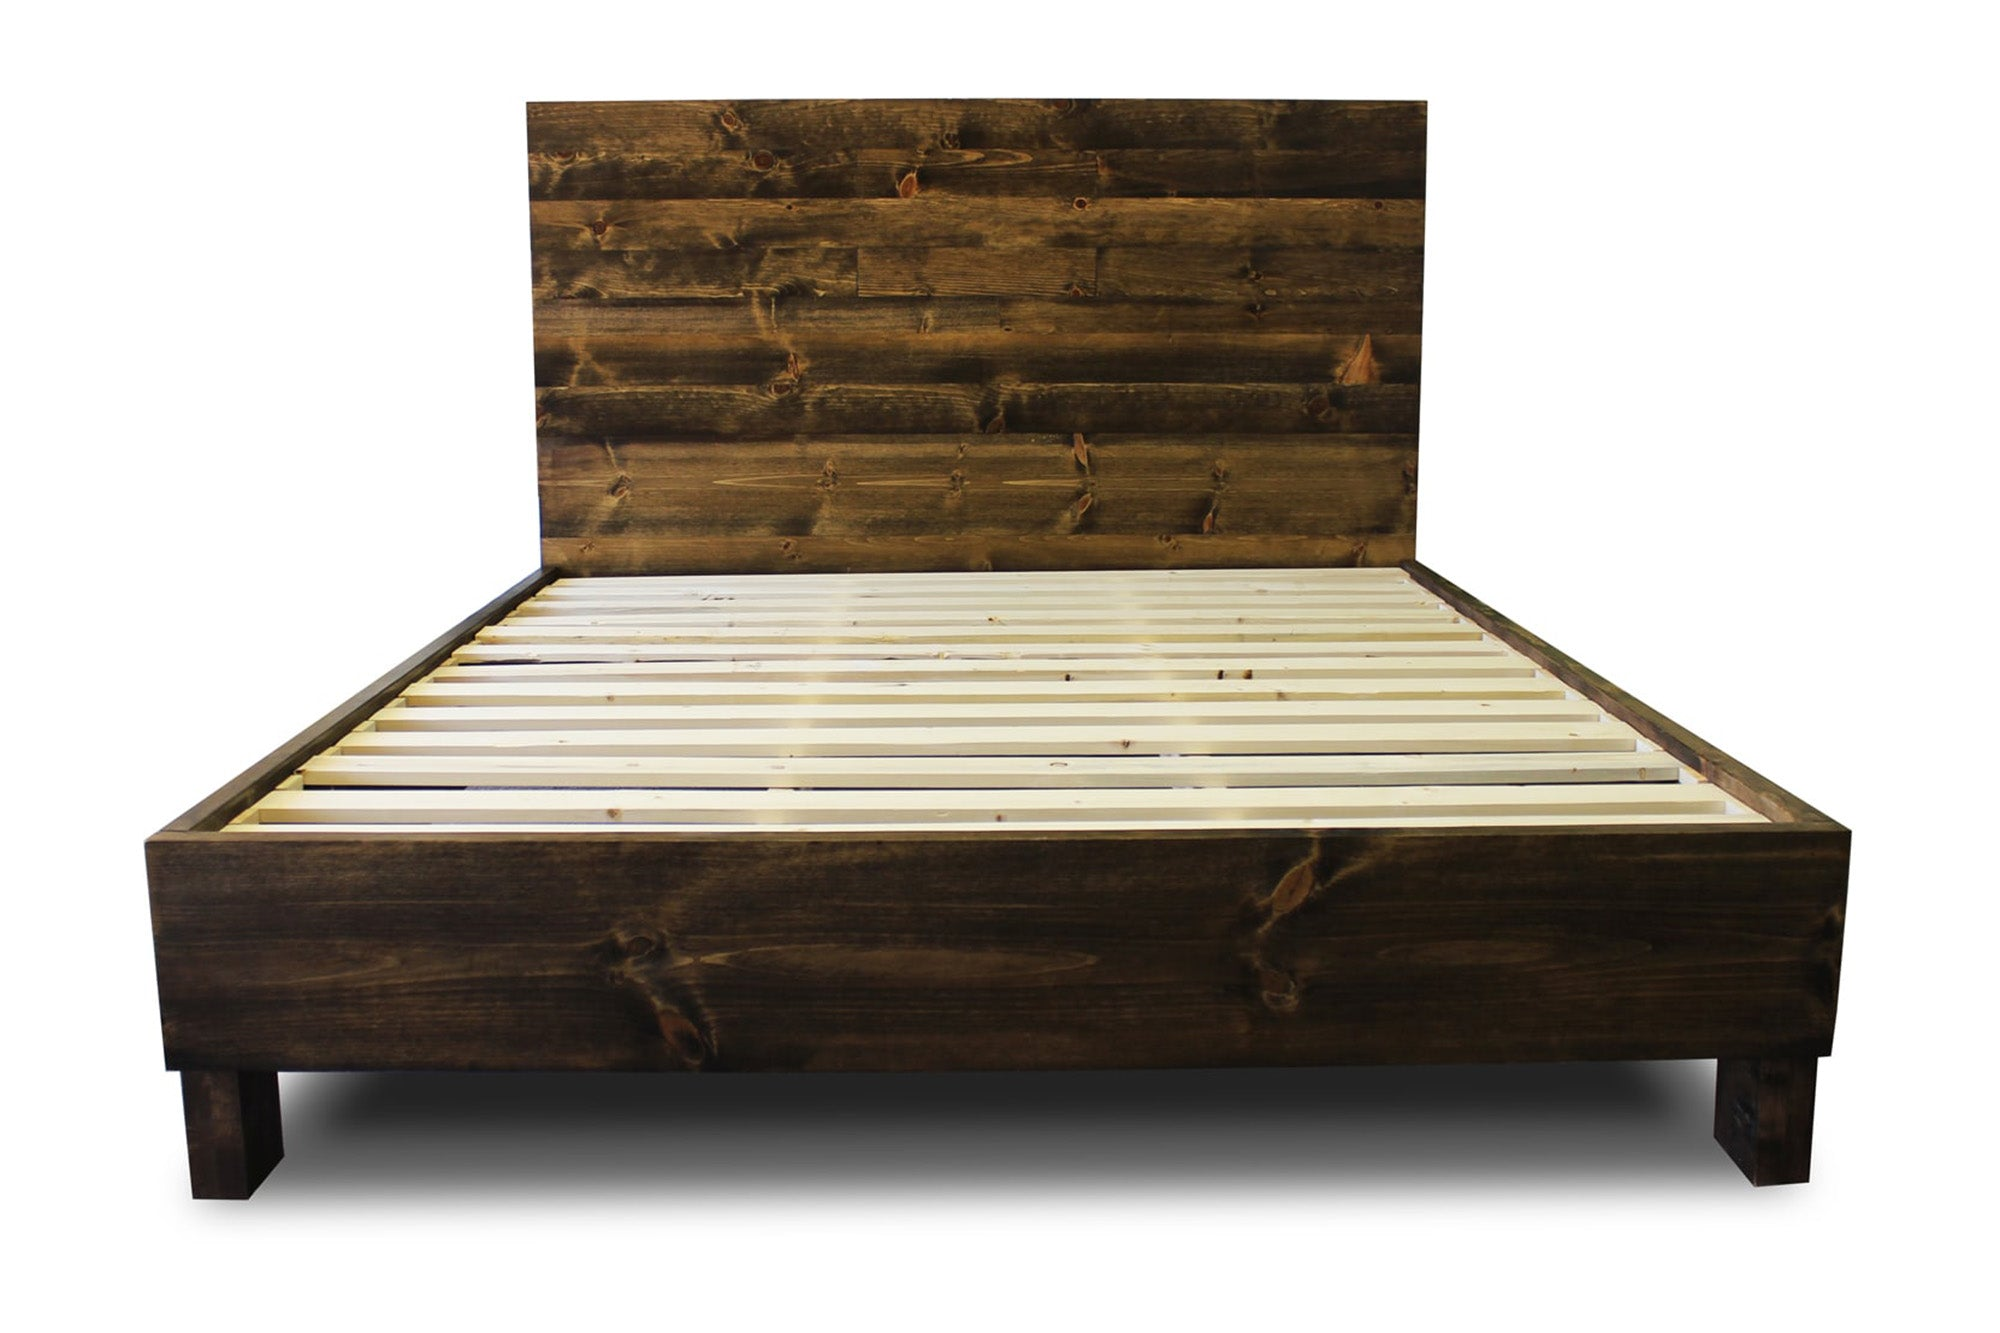 Flagstaff bed frame and headboard set pereida rice for Lit queen size